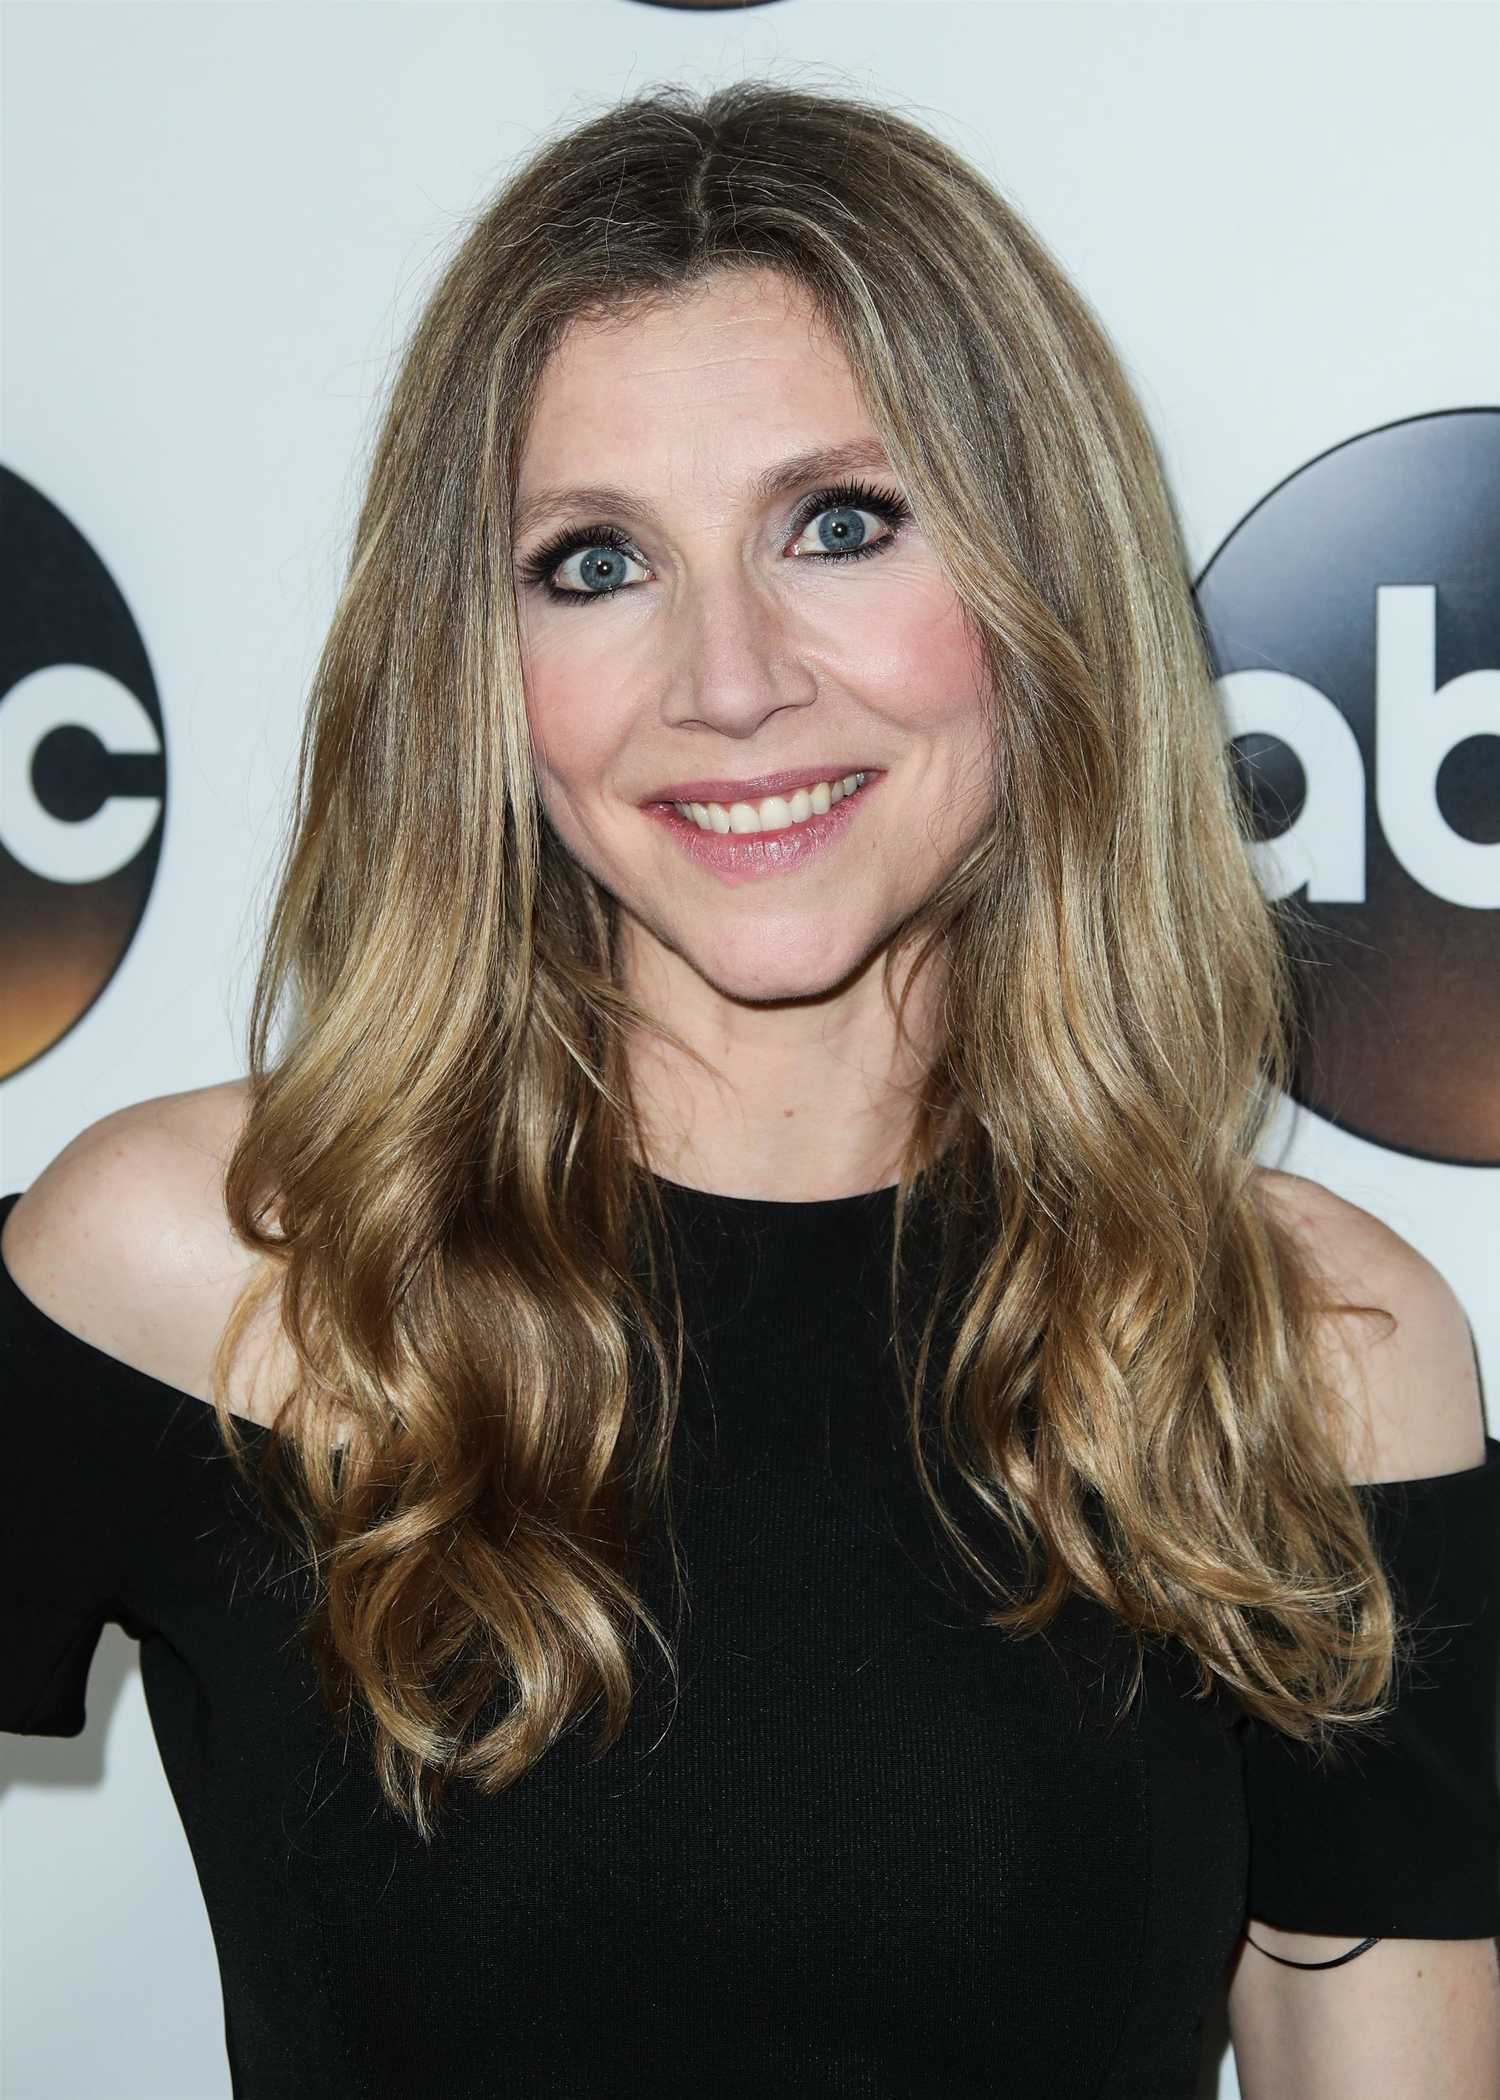 Sarah Chalke At Disney Abc Tca Winter Press Tour In